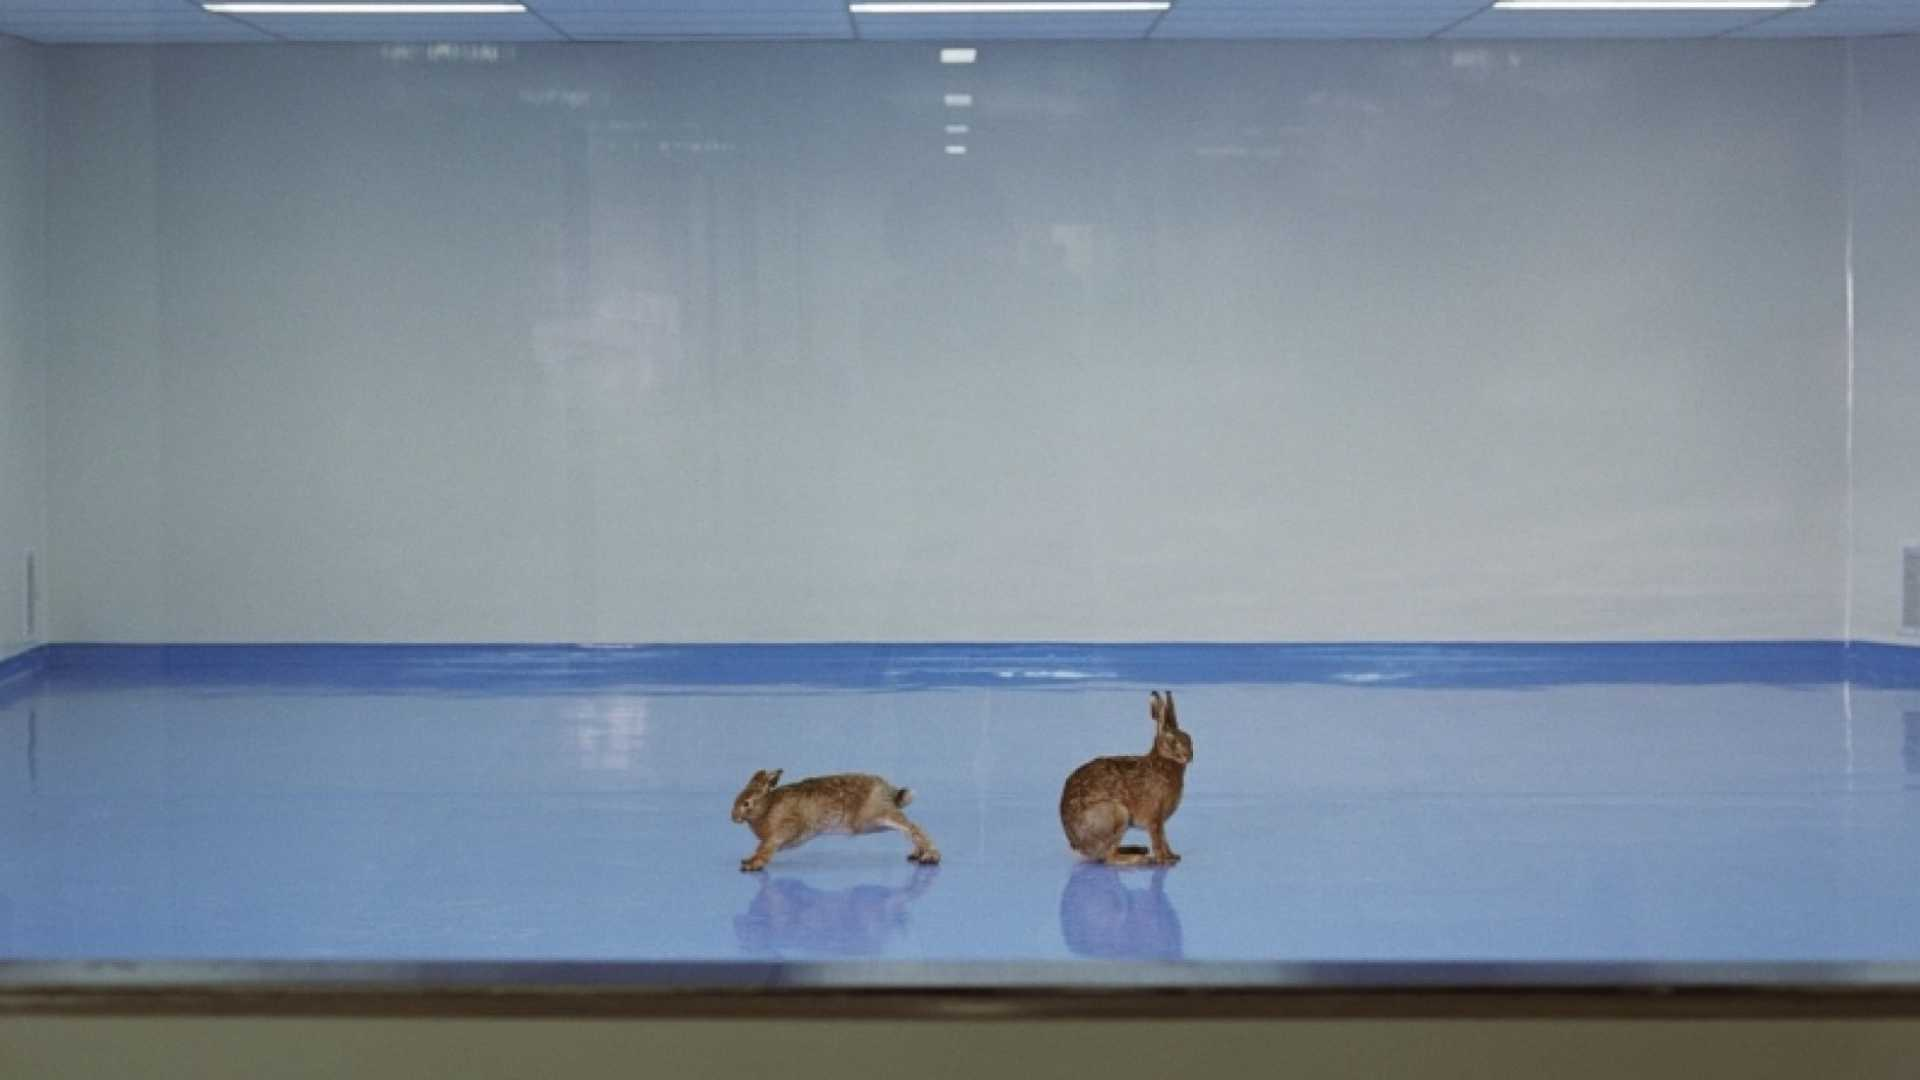 Need Help Focusing? Think About 2 Rabbits